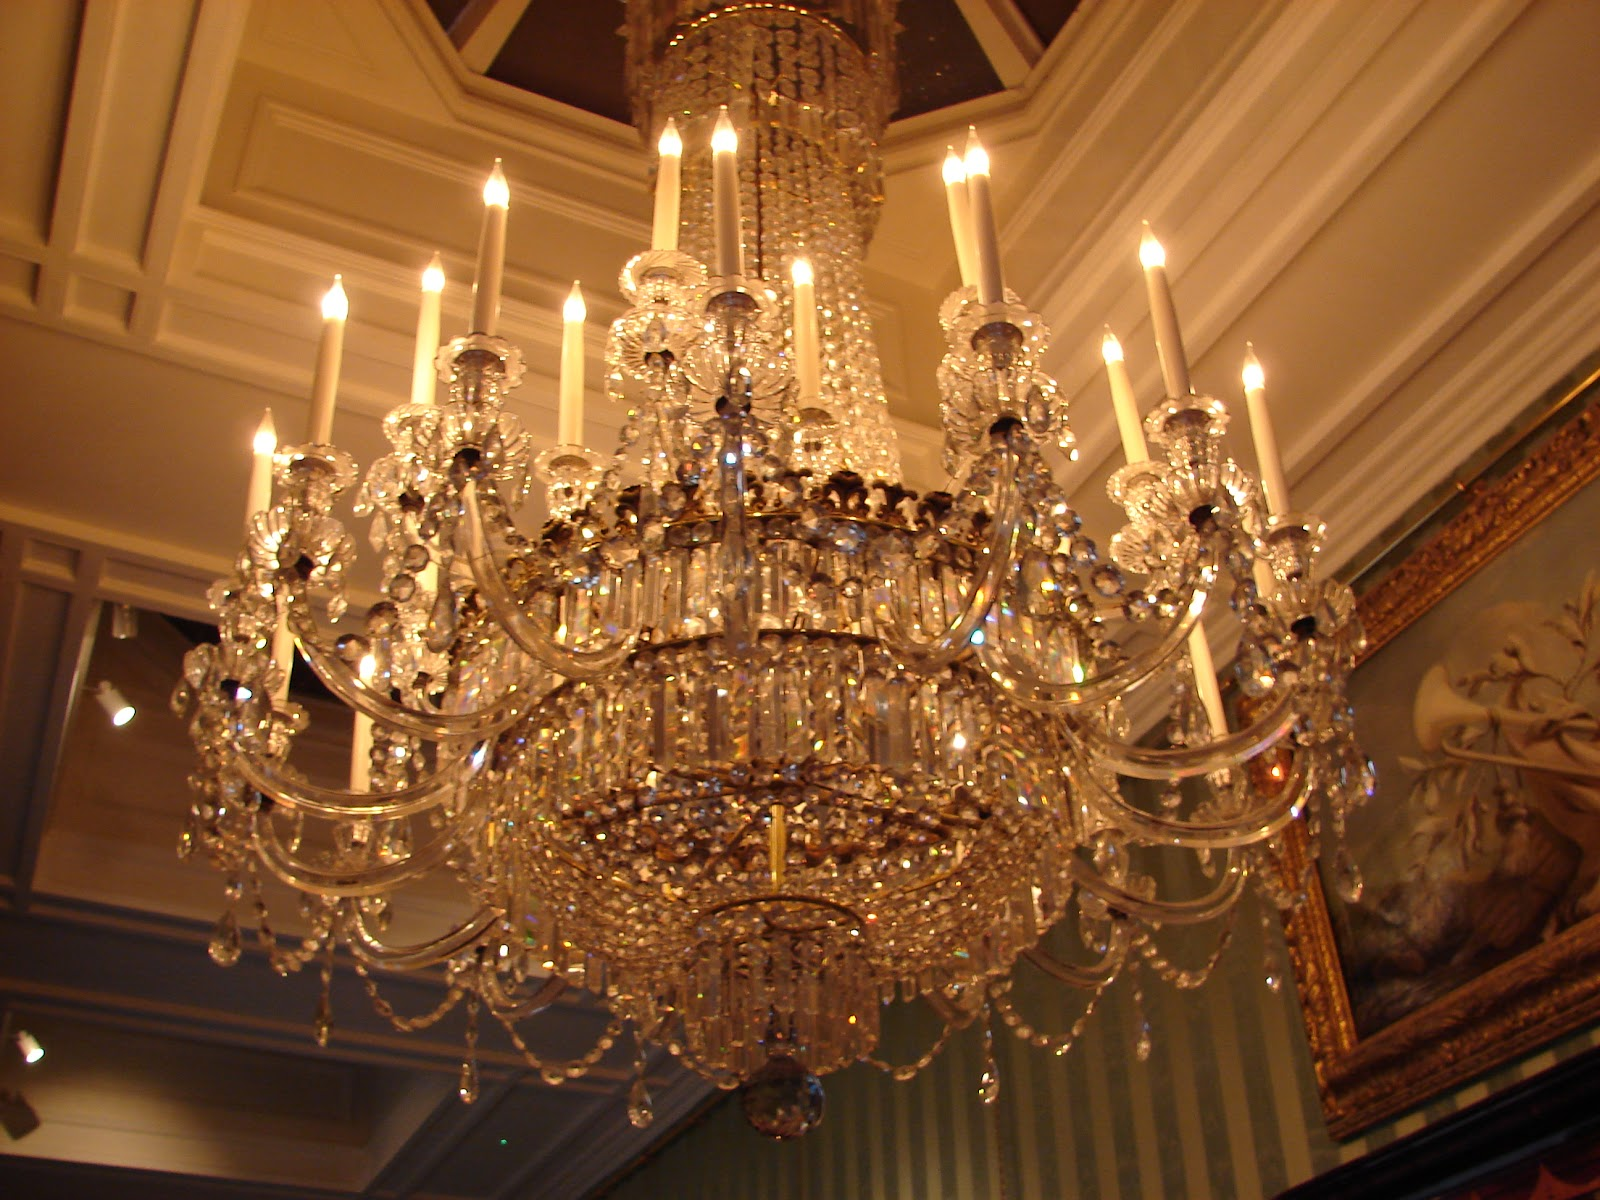 Chandelier_at_Chatsworth_House.jpg